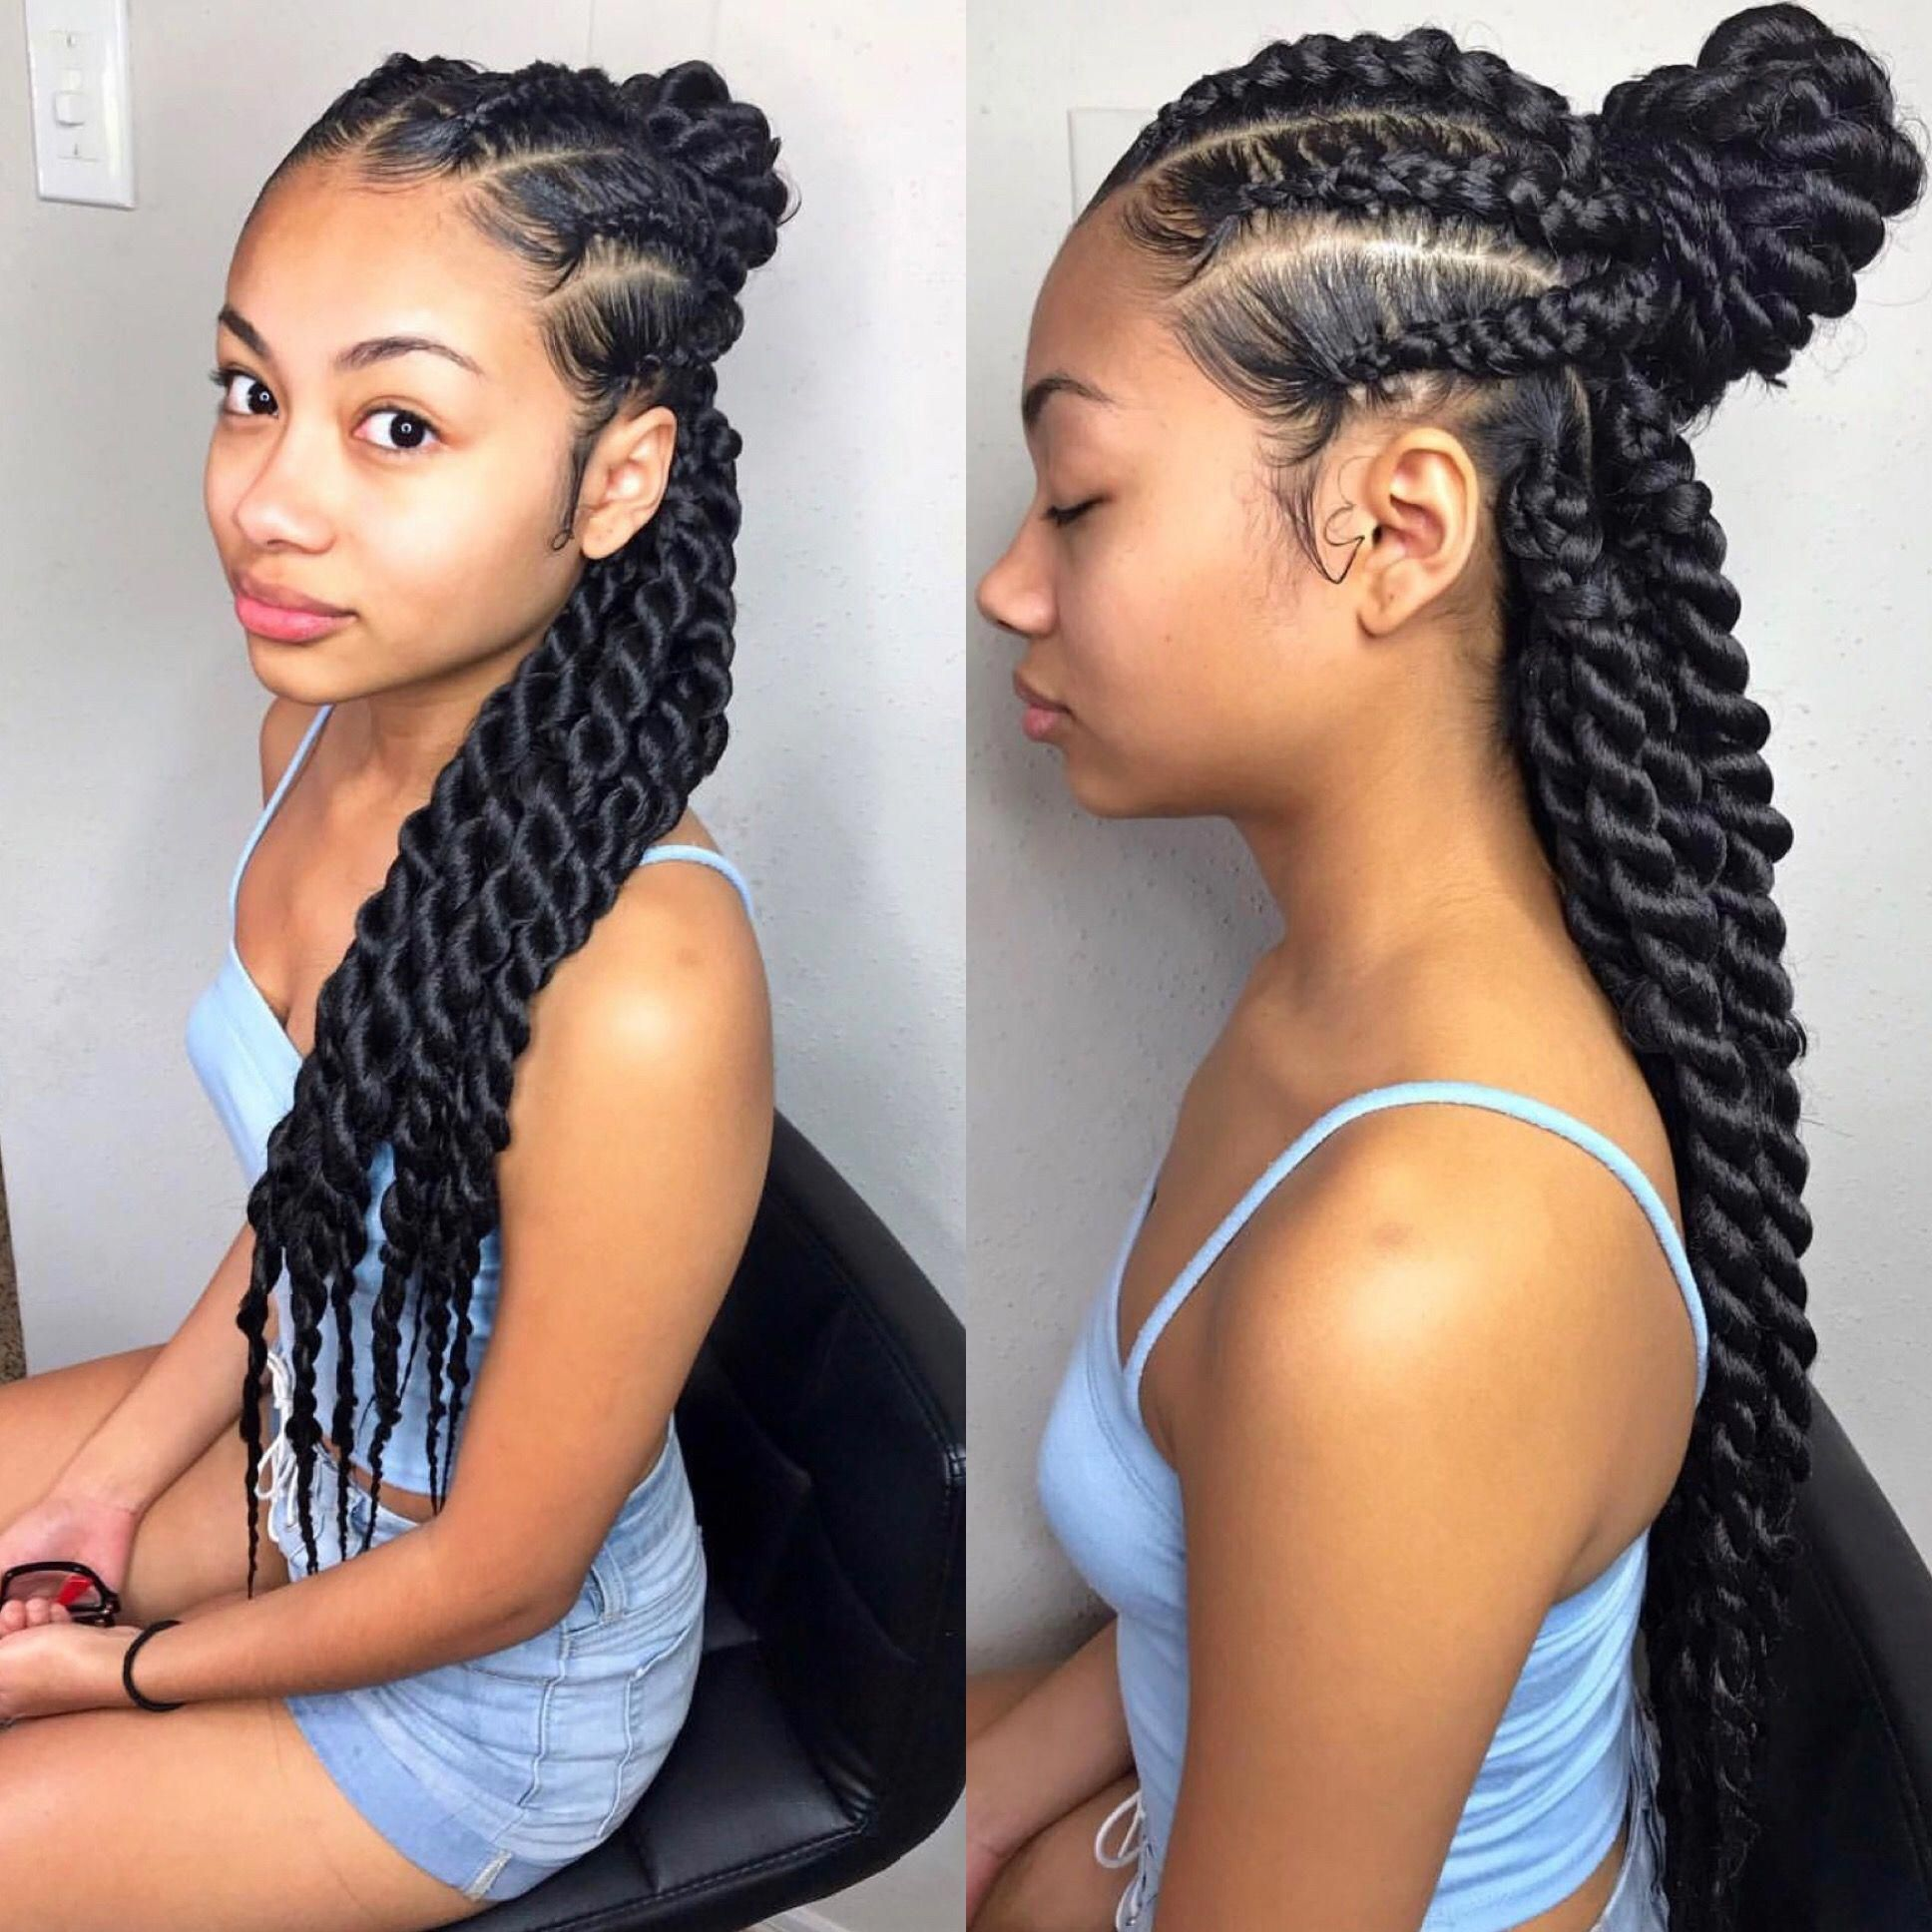 These Half Braided Hairstyles Really Are Trendy Halfbraidedhairstyles Half Braided Hairstyles Cool Braid Hairstyles Natural Hair Styles